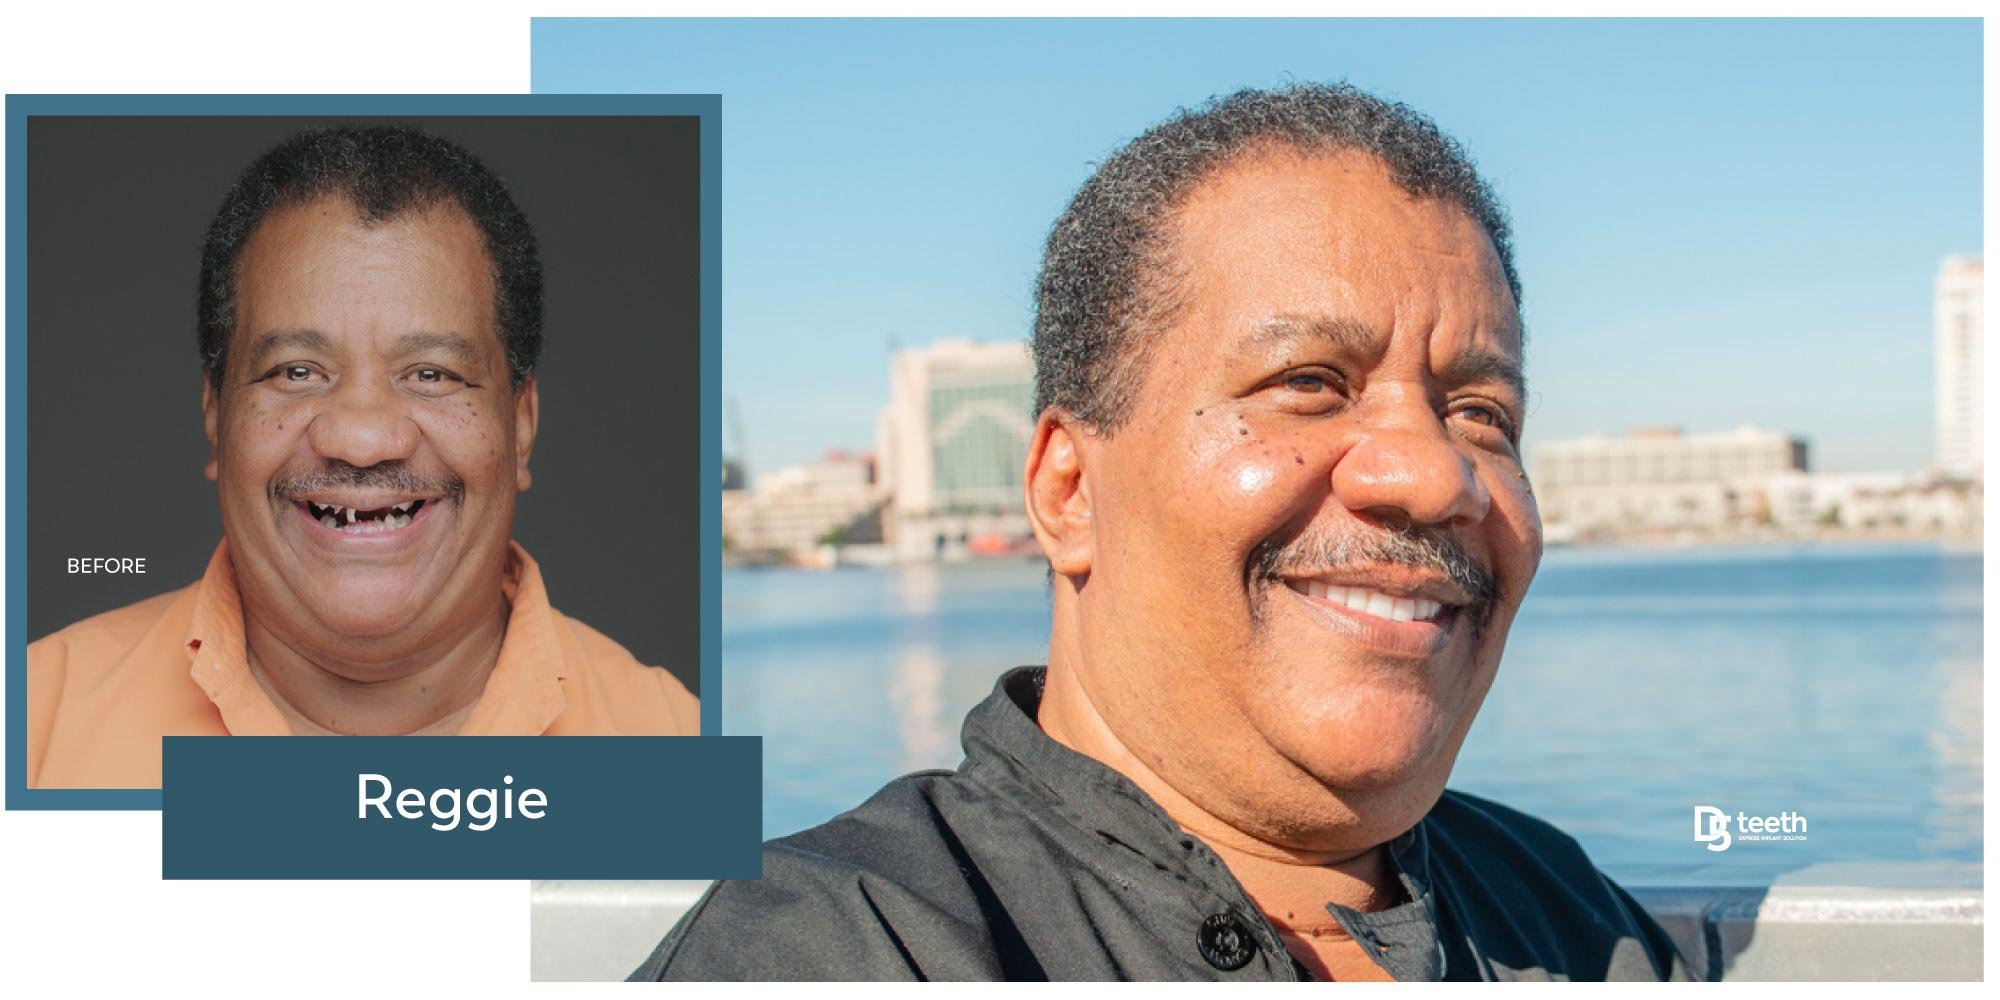 Reggie Before And After